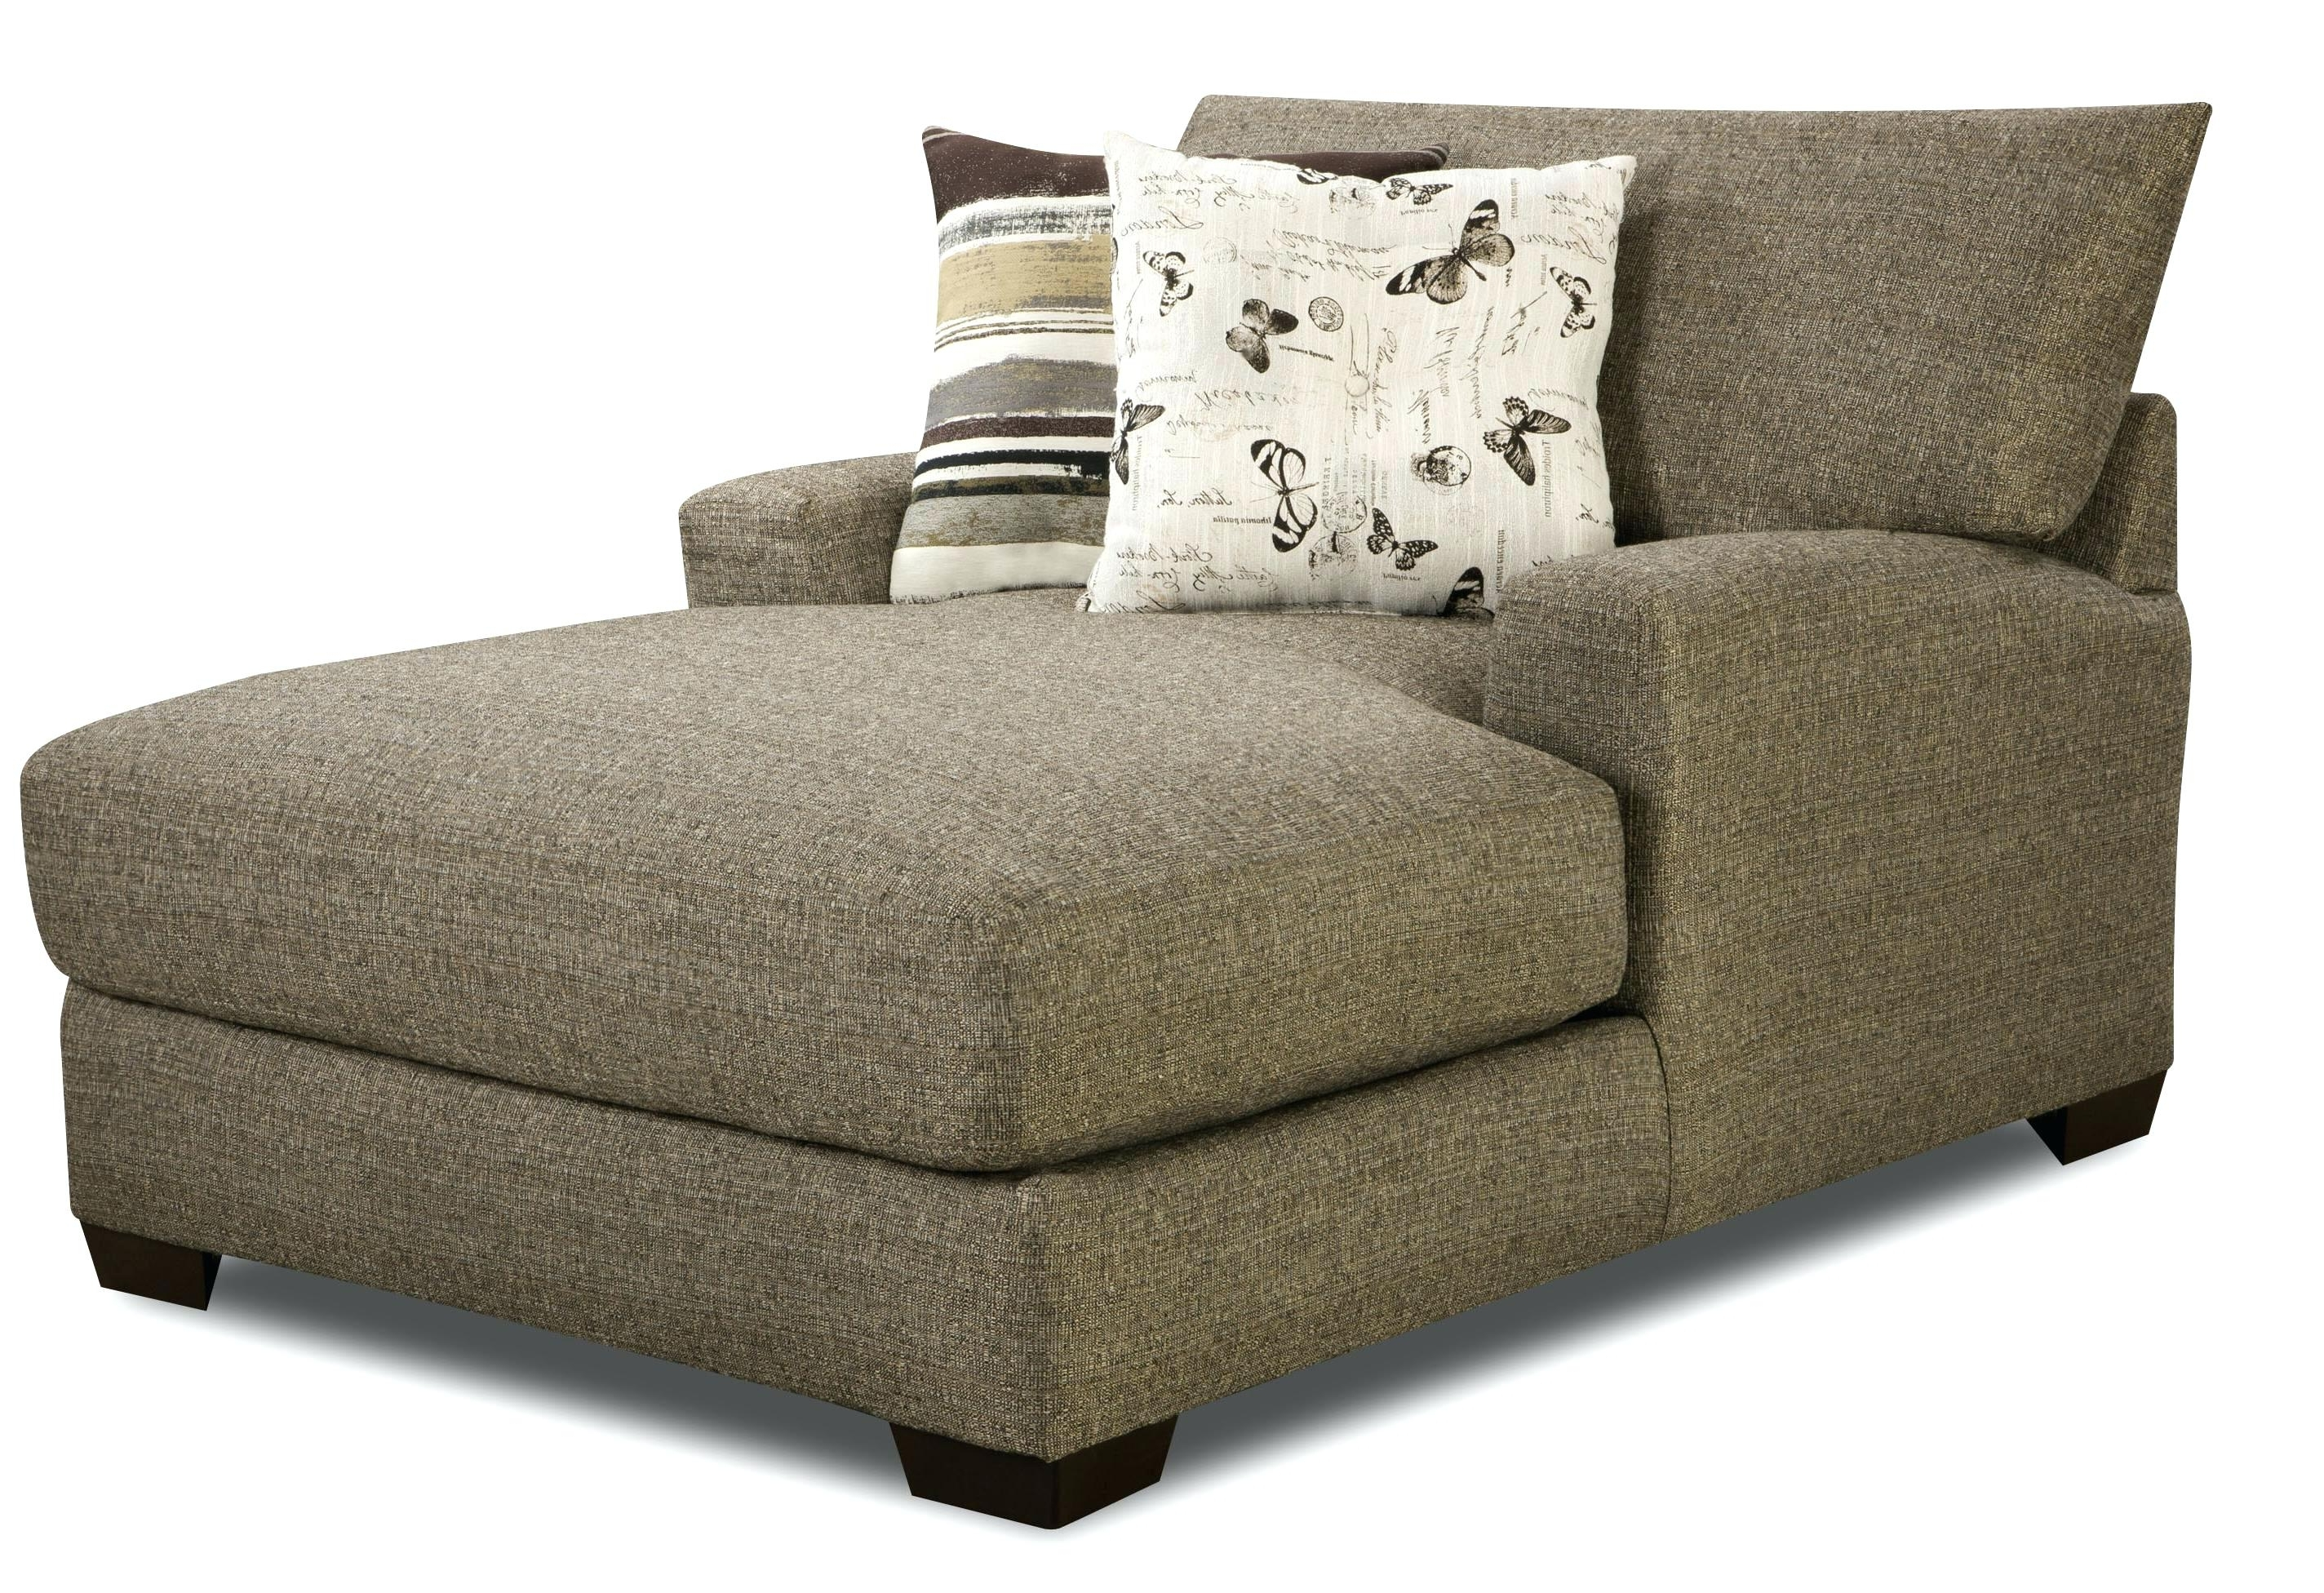 Fashionable Indoor Chaise Lounge Slipcovers Regarding Indoor Chaise Lounge Chair Covers • Chair Covers Ideas (View 12 of 15)